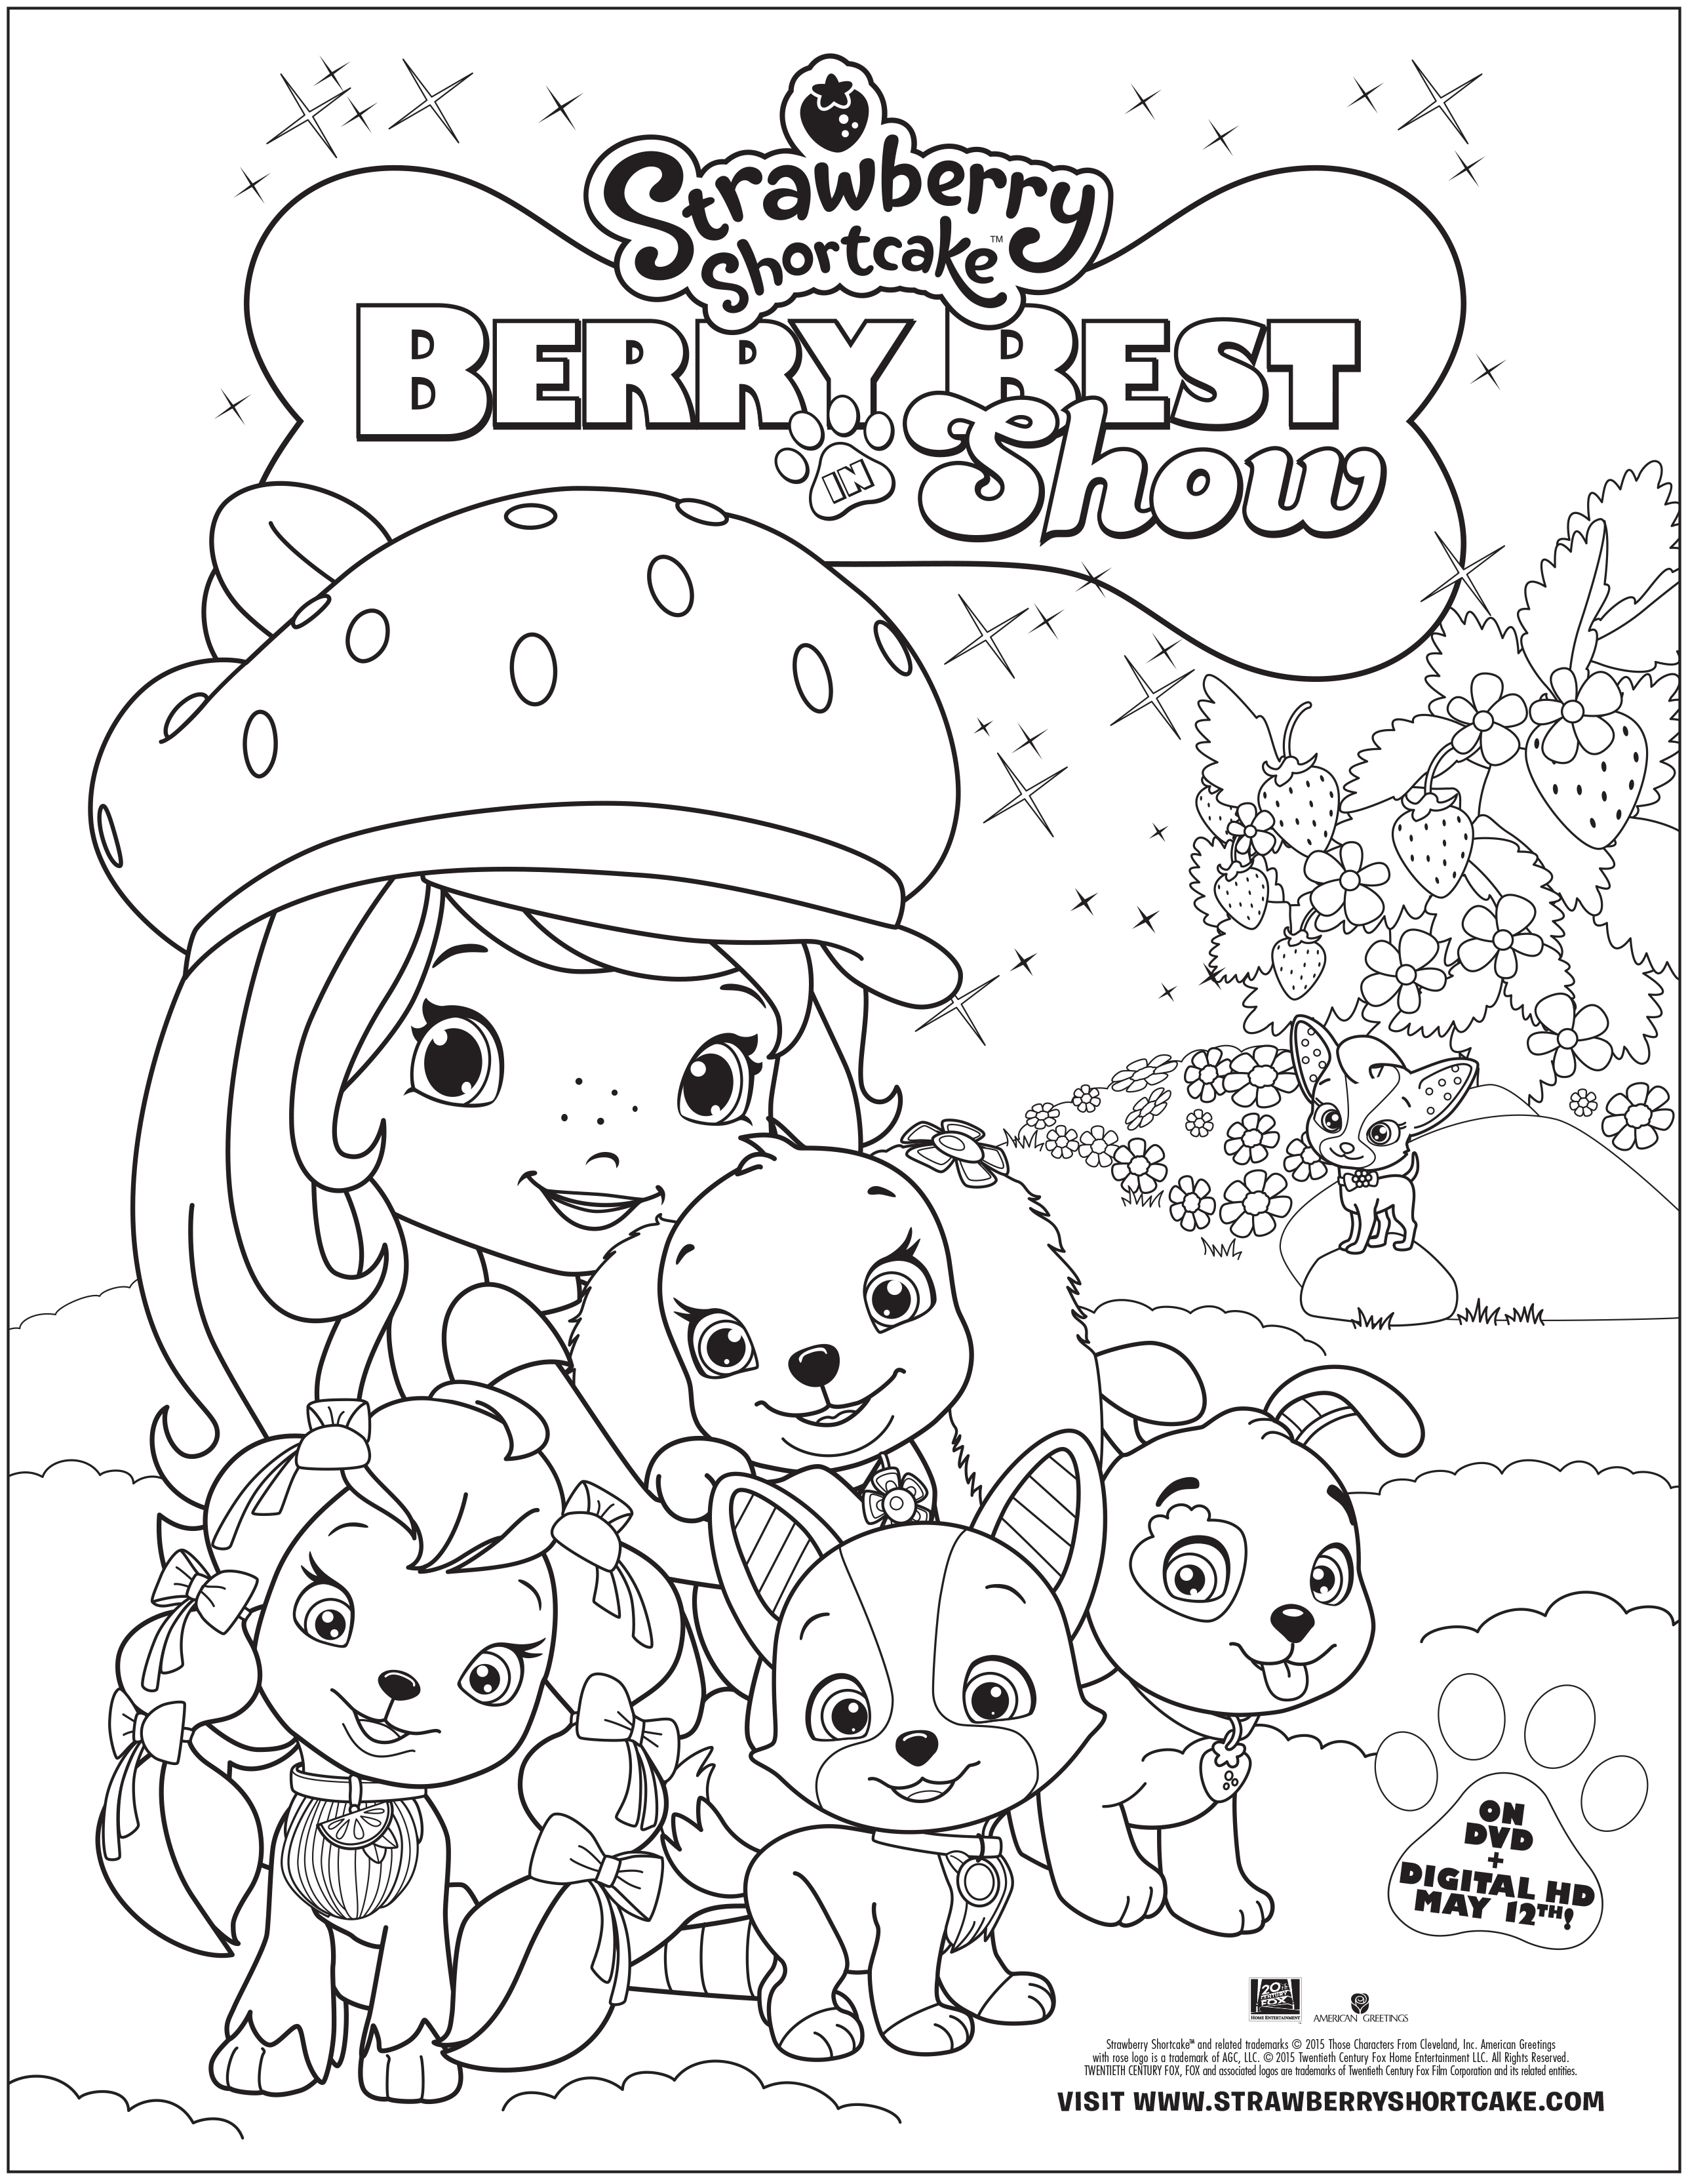 Strawberry shortcake berry best in show dvd review and for Strawberry shortcake coloring pages to print